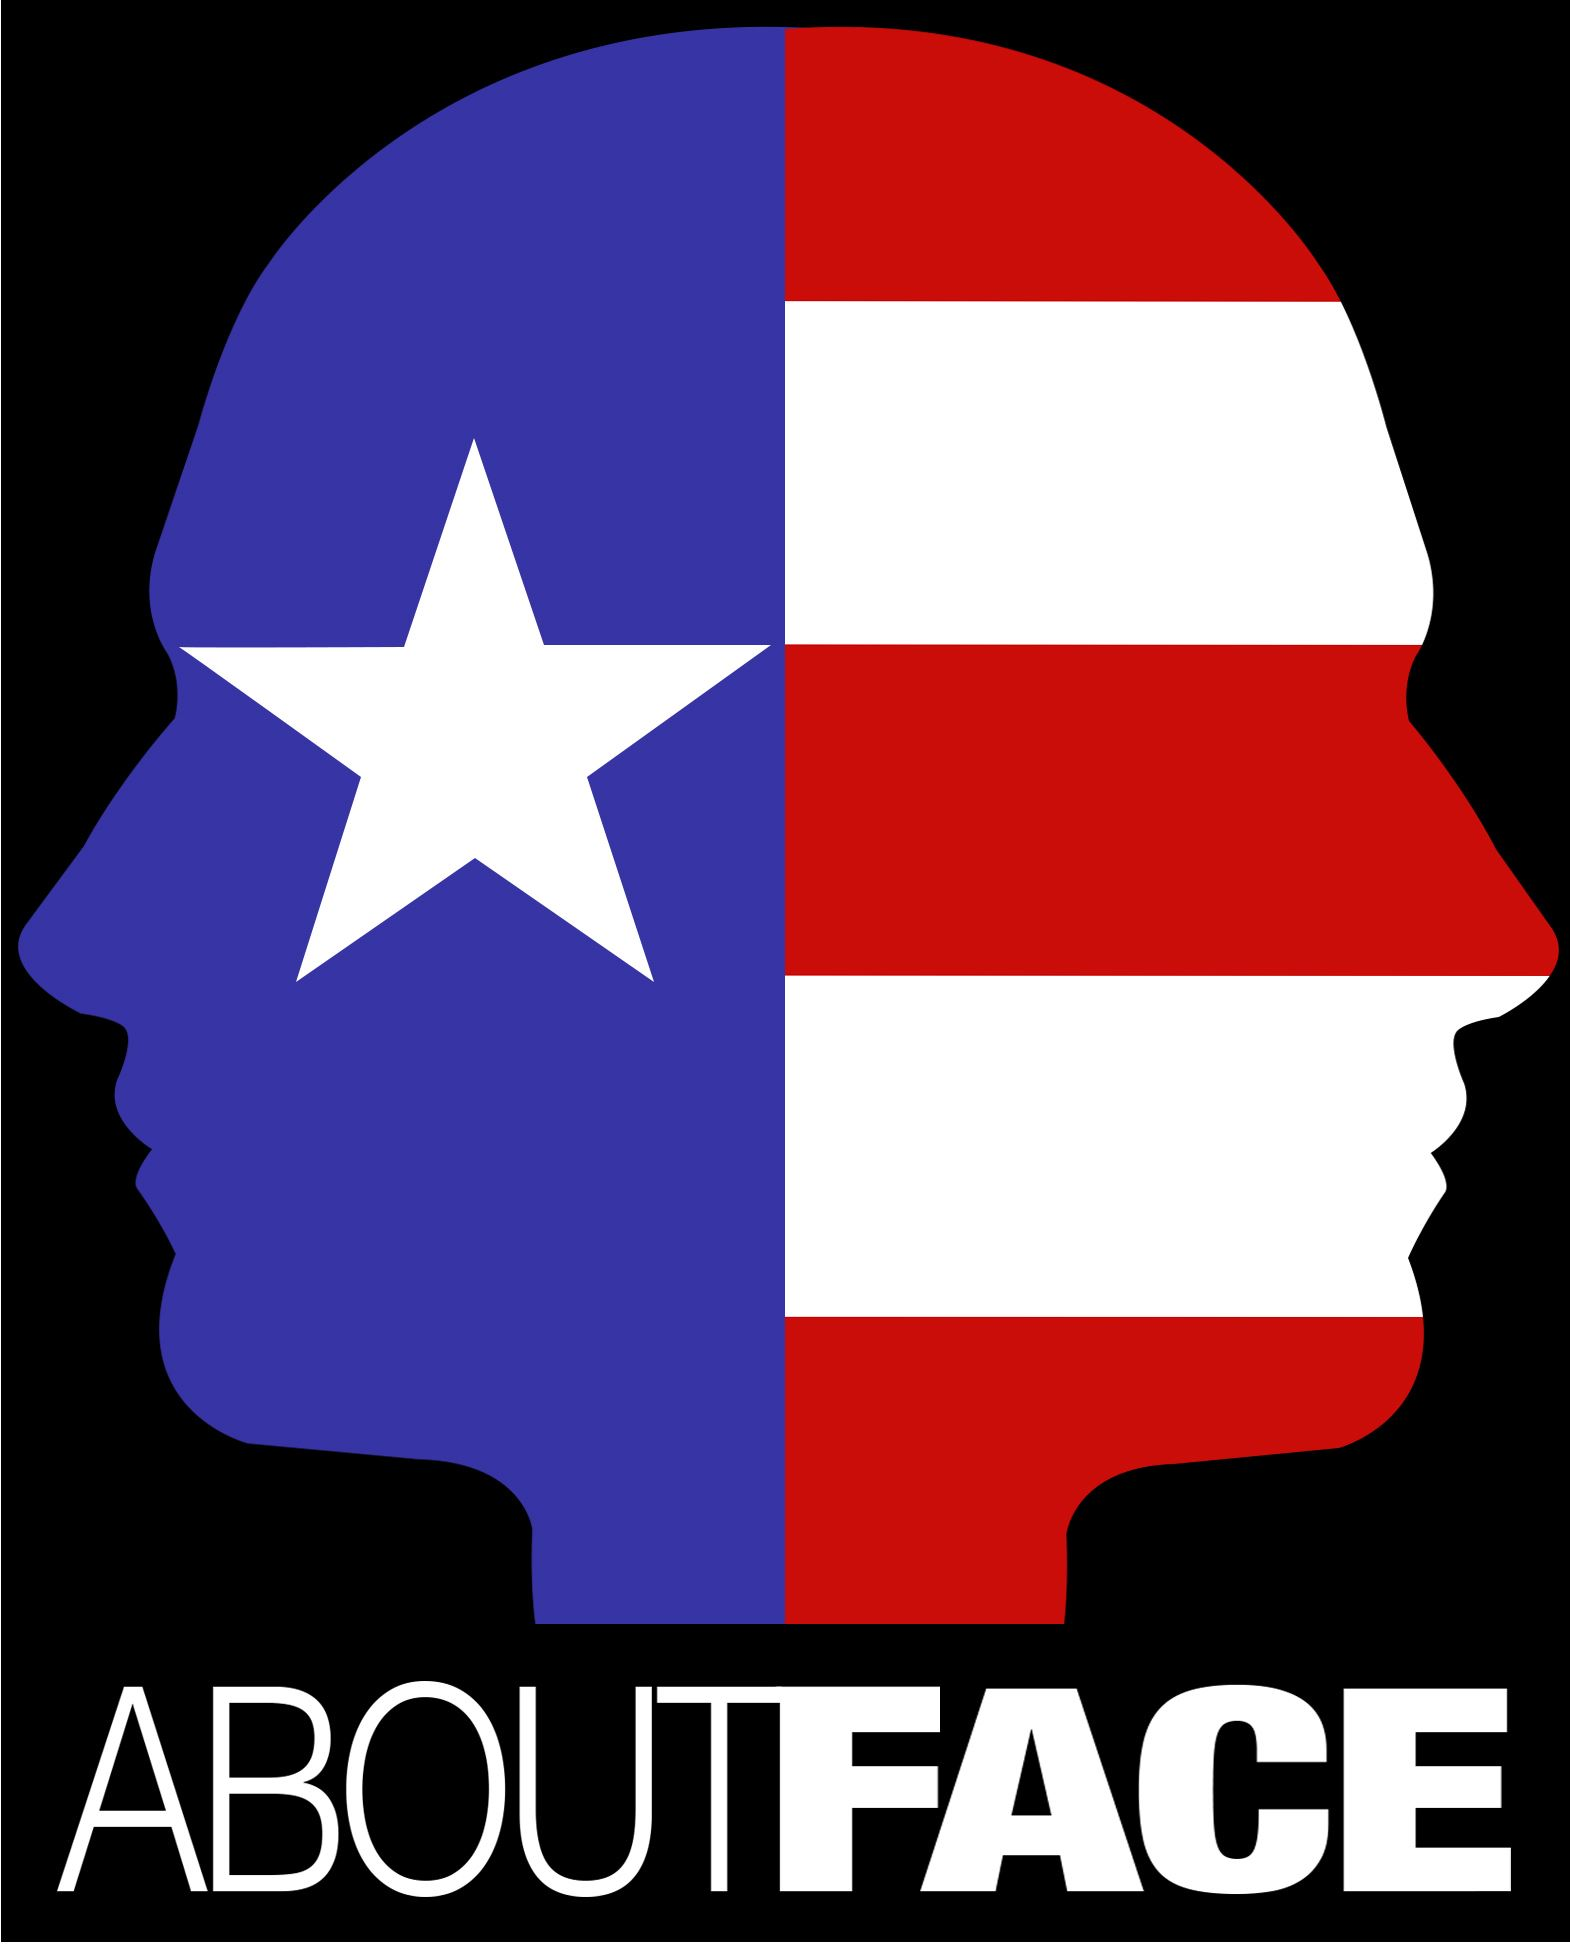 ABOUTFACE LOGO for Event Calendar